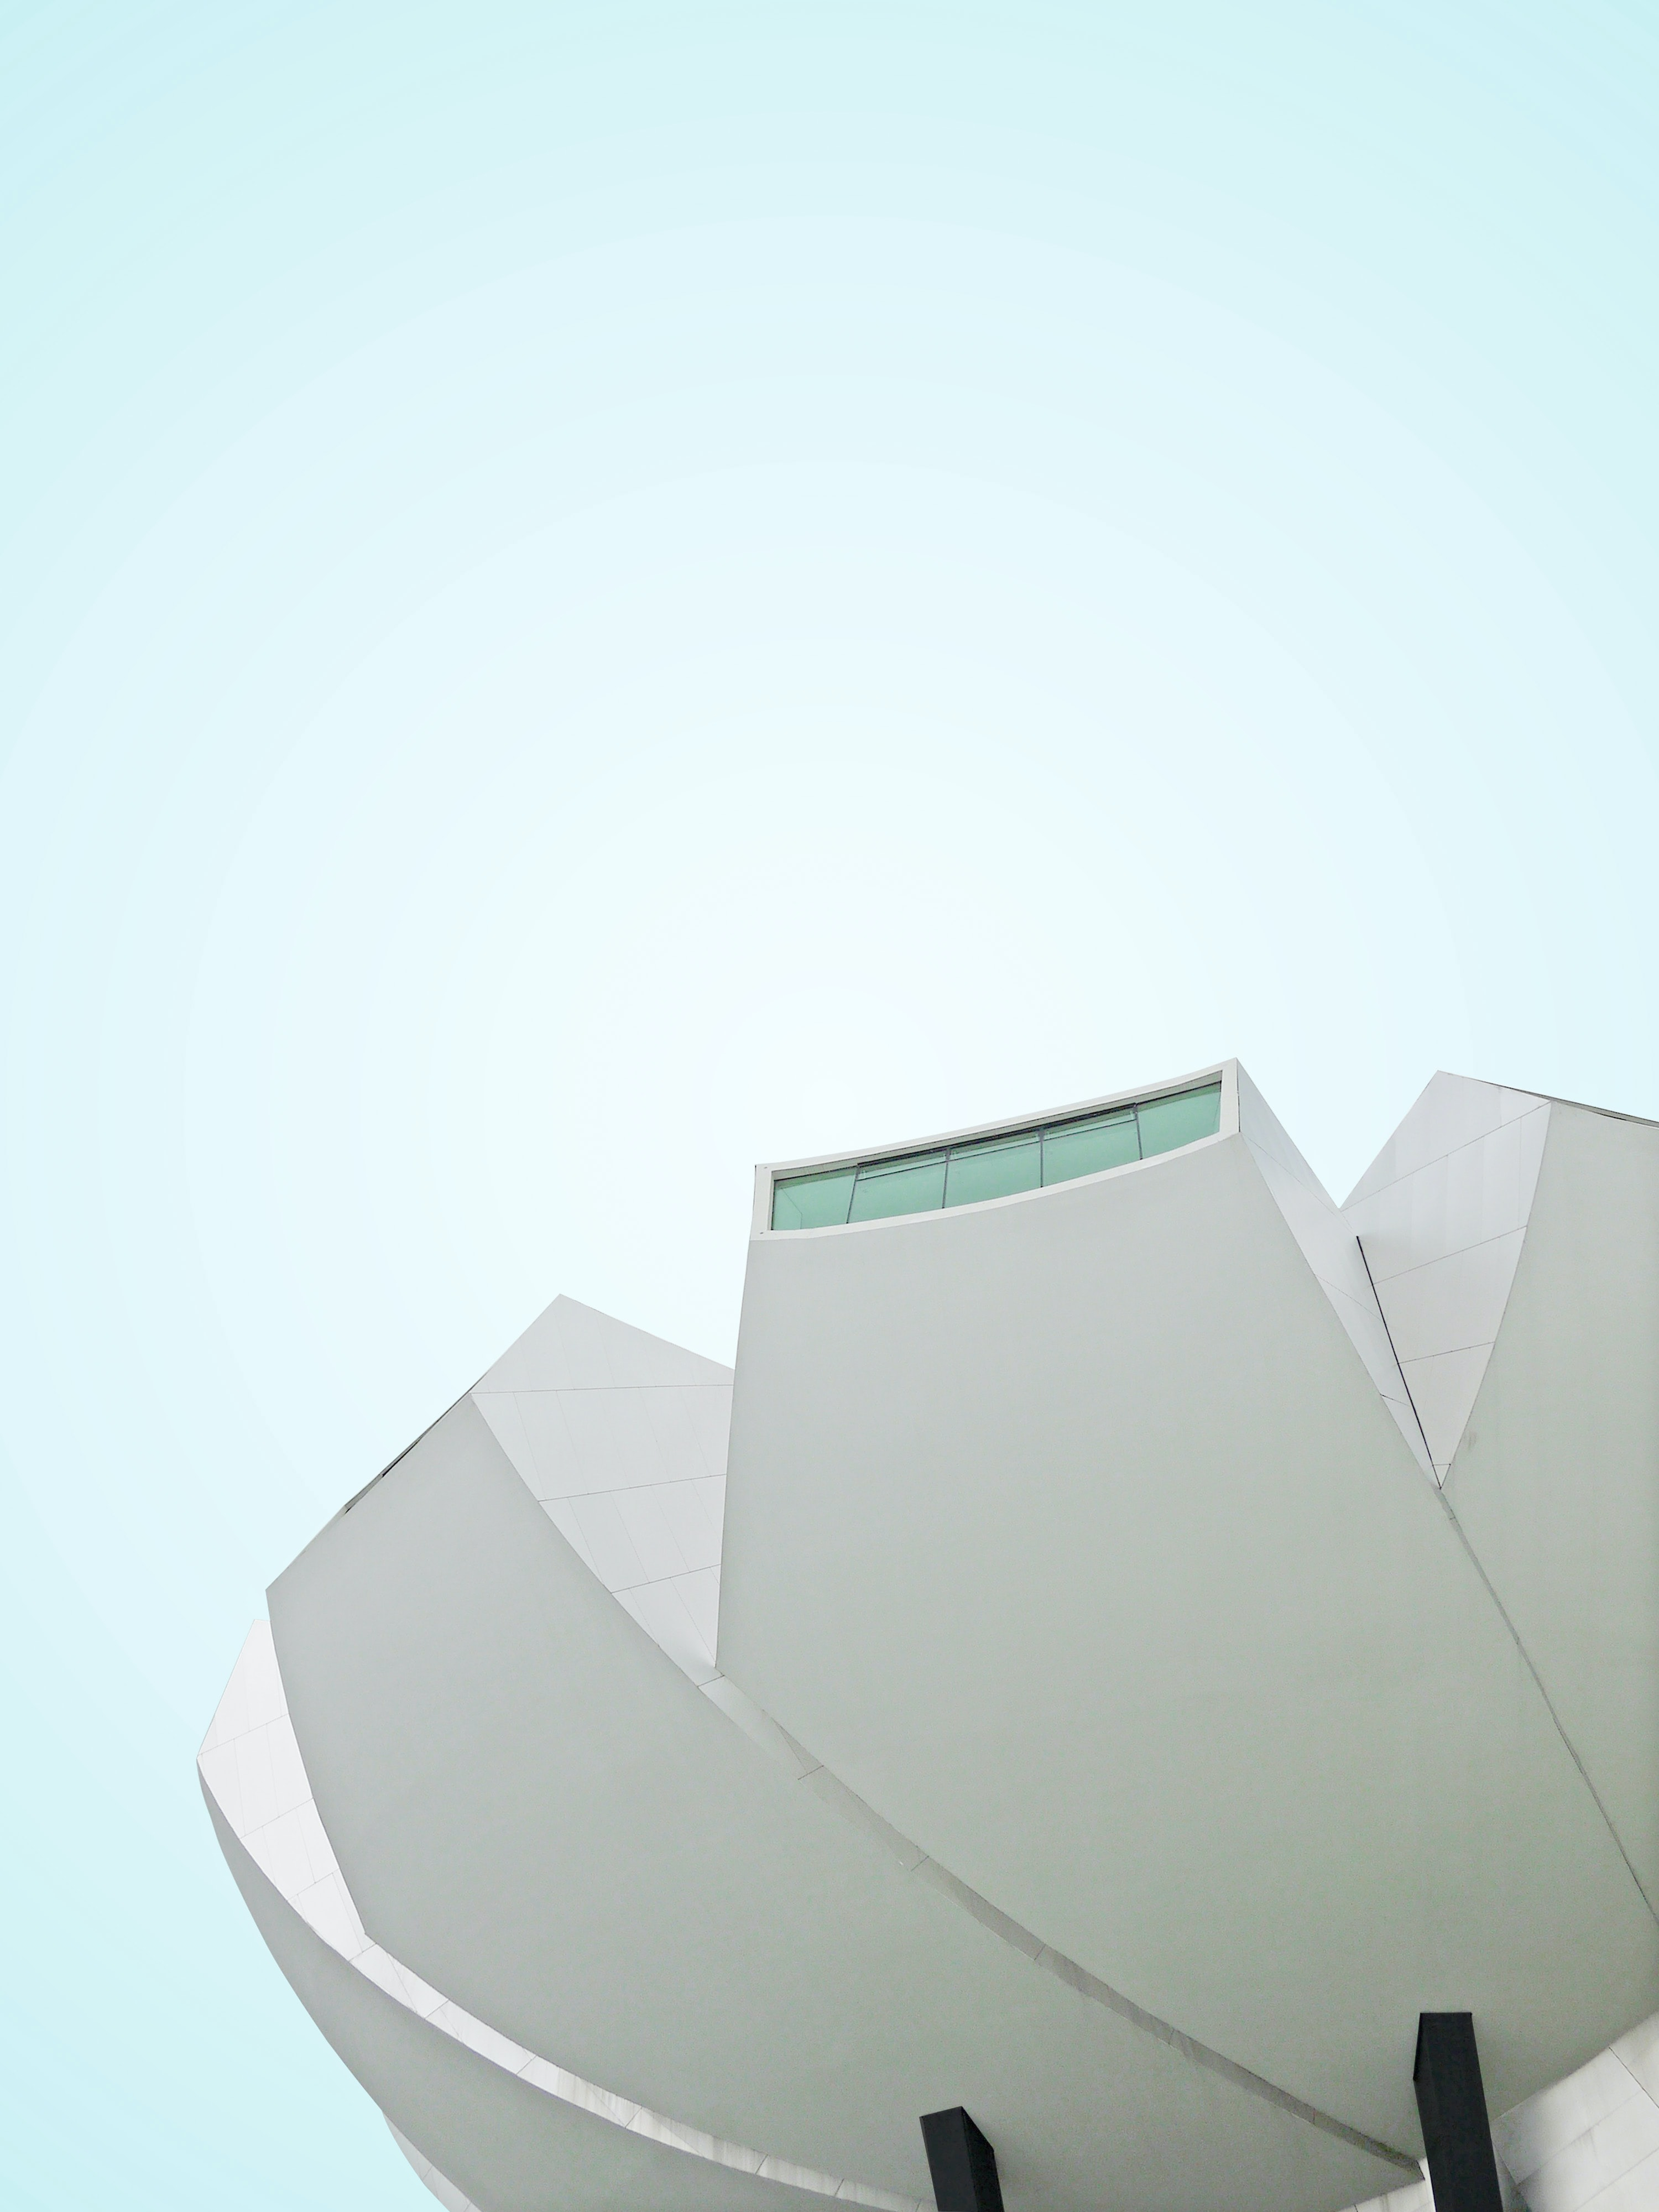 low angle photography of white painted building